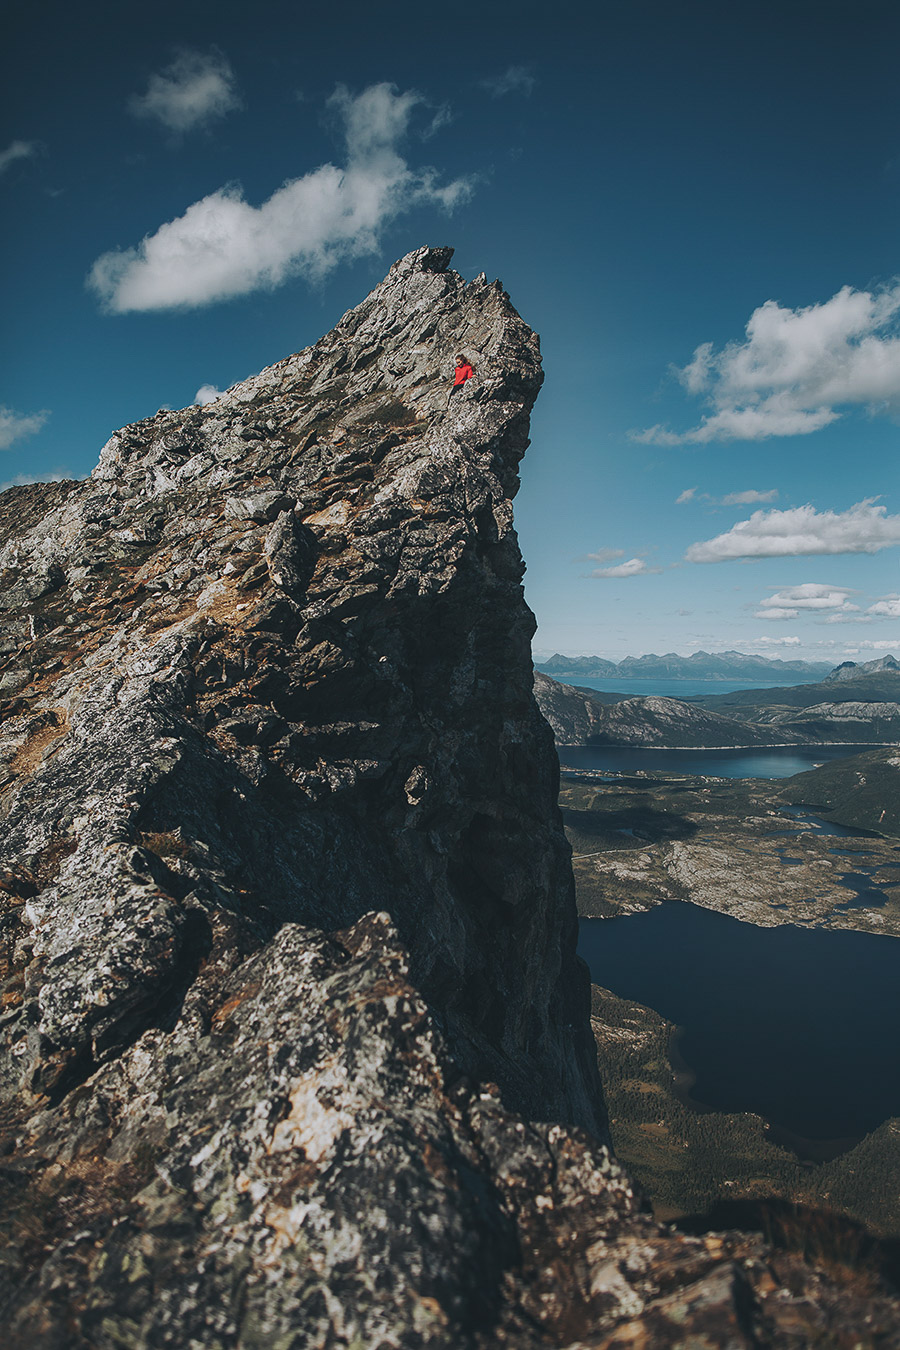 Girl in a red jacket on top of a cliff in Bodø